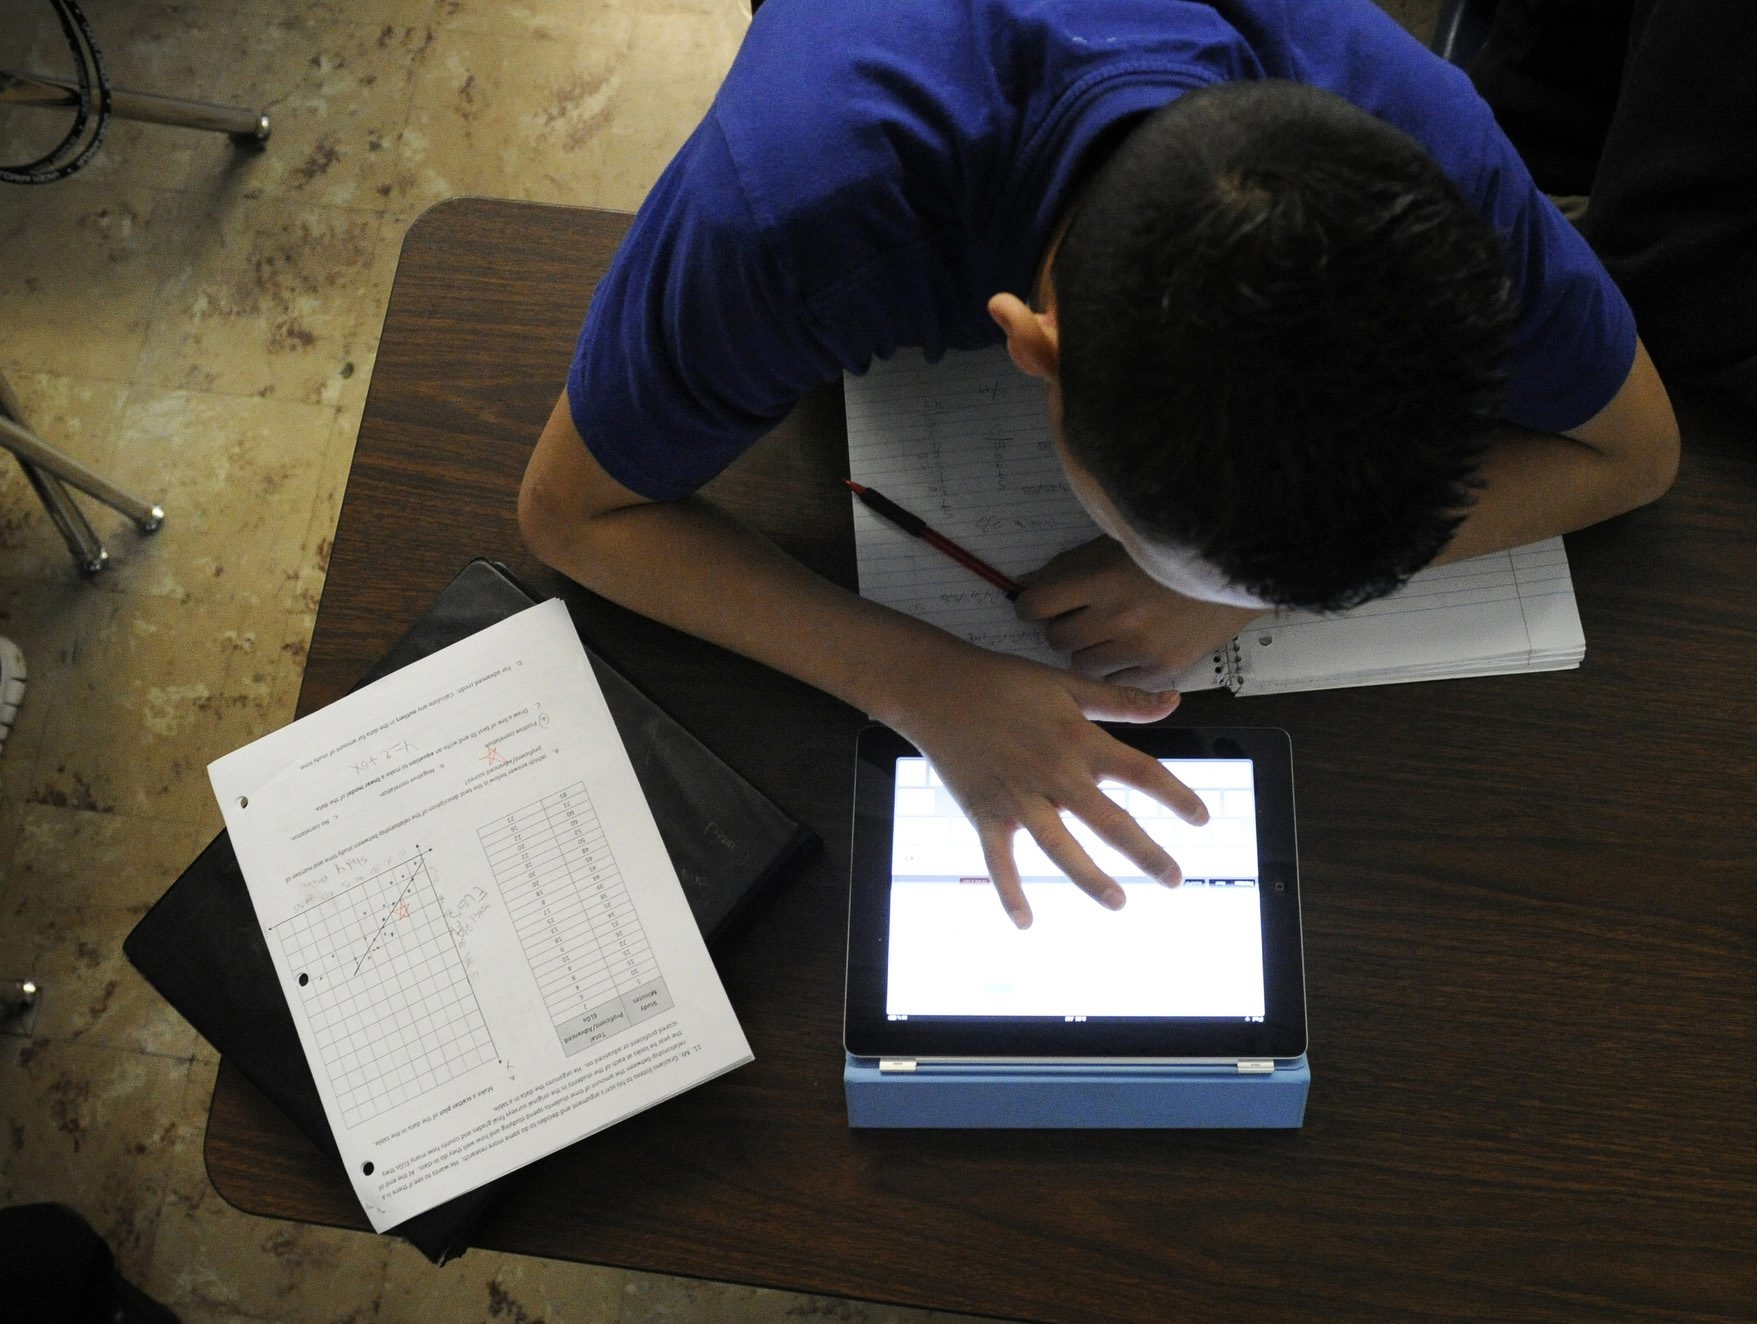 Make sure your kids use passwords for their smartphones and tablets.